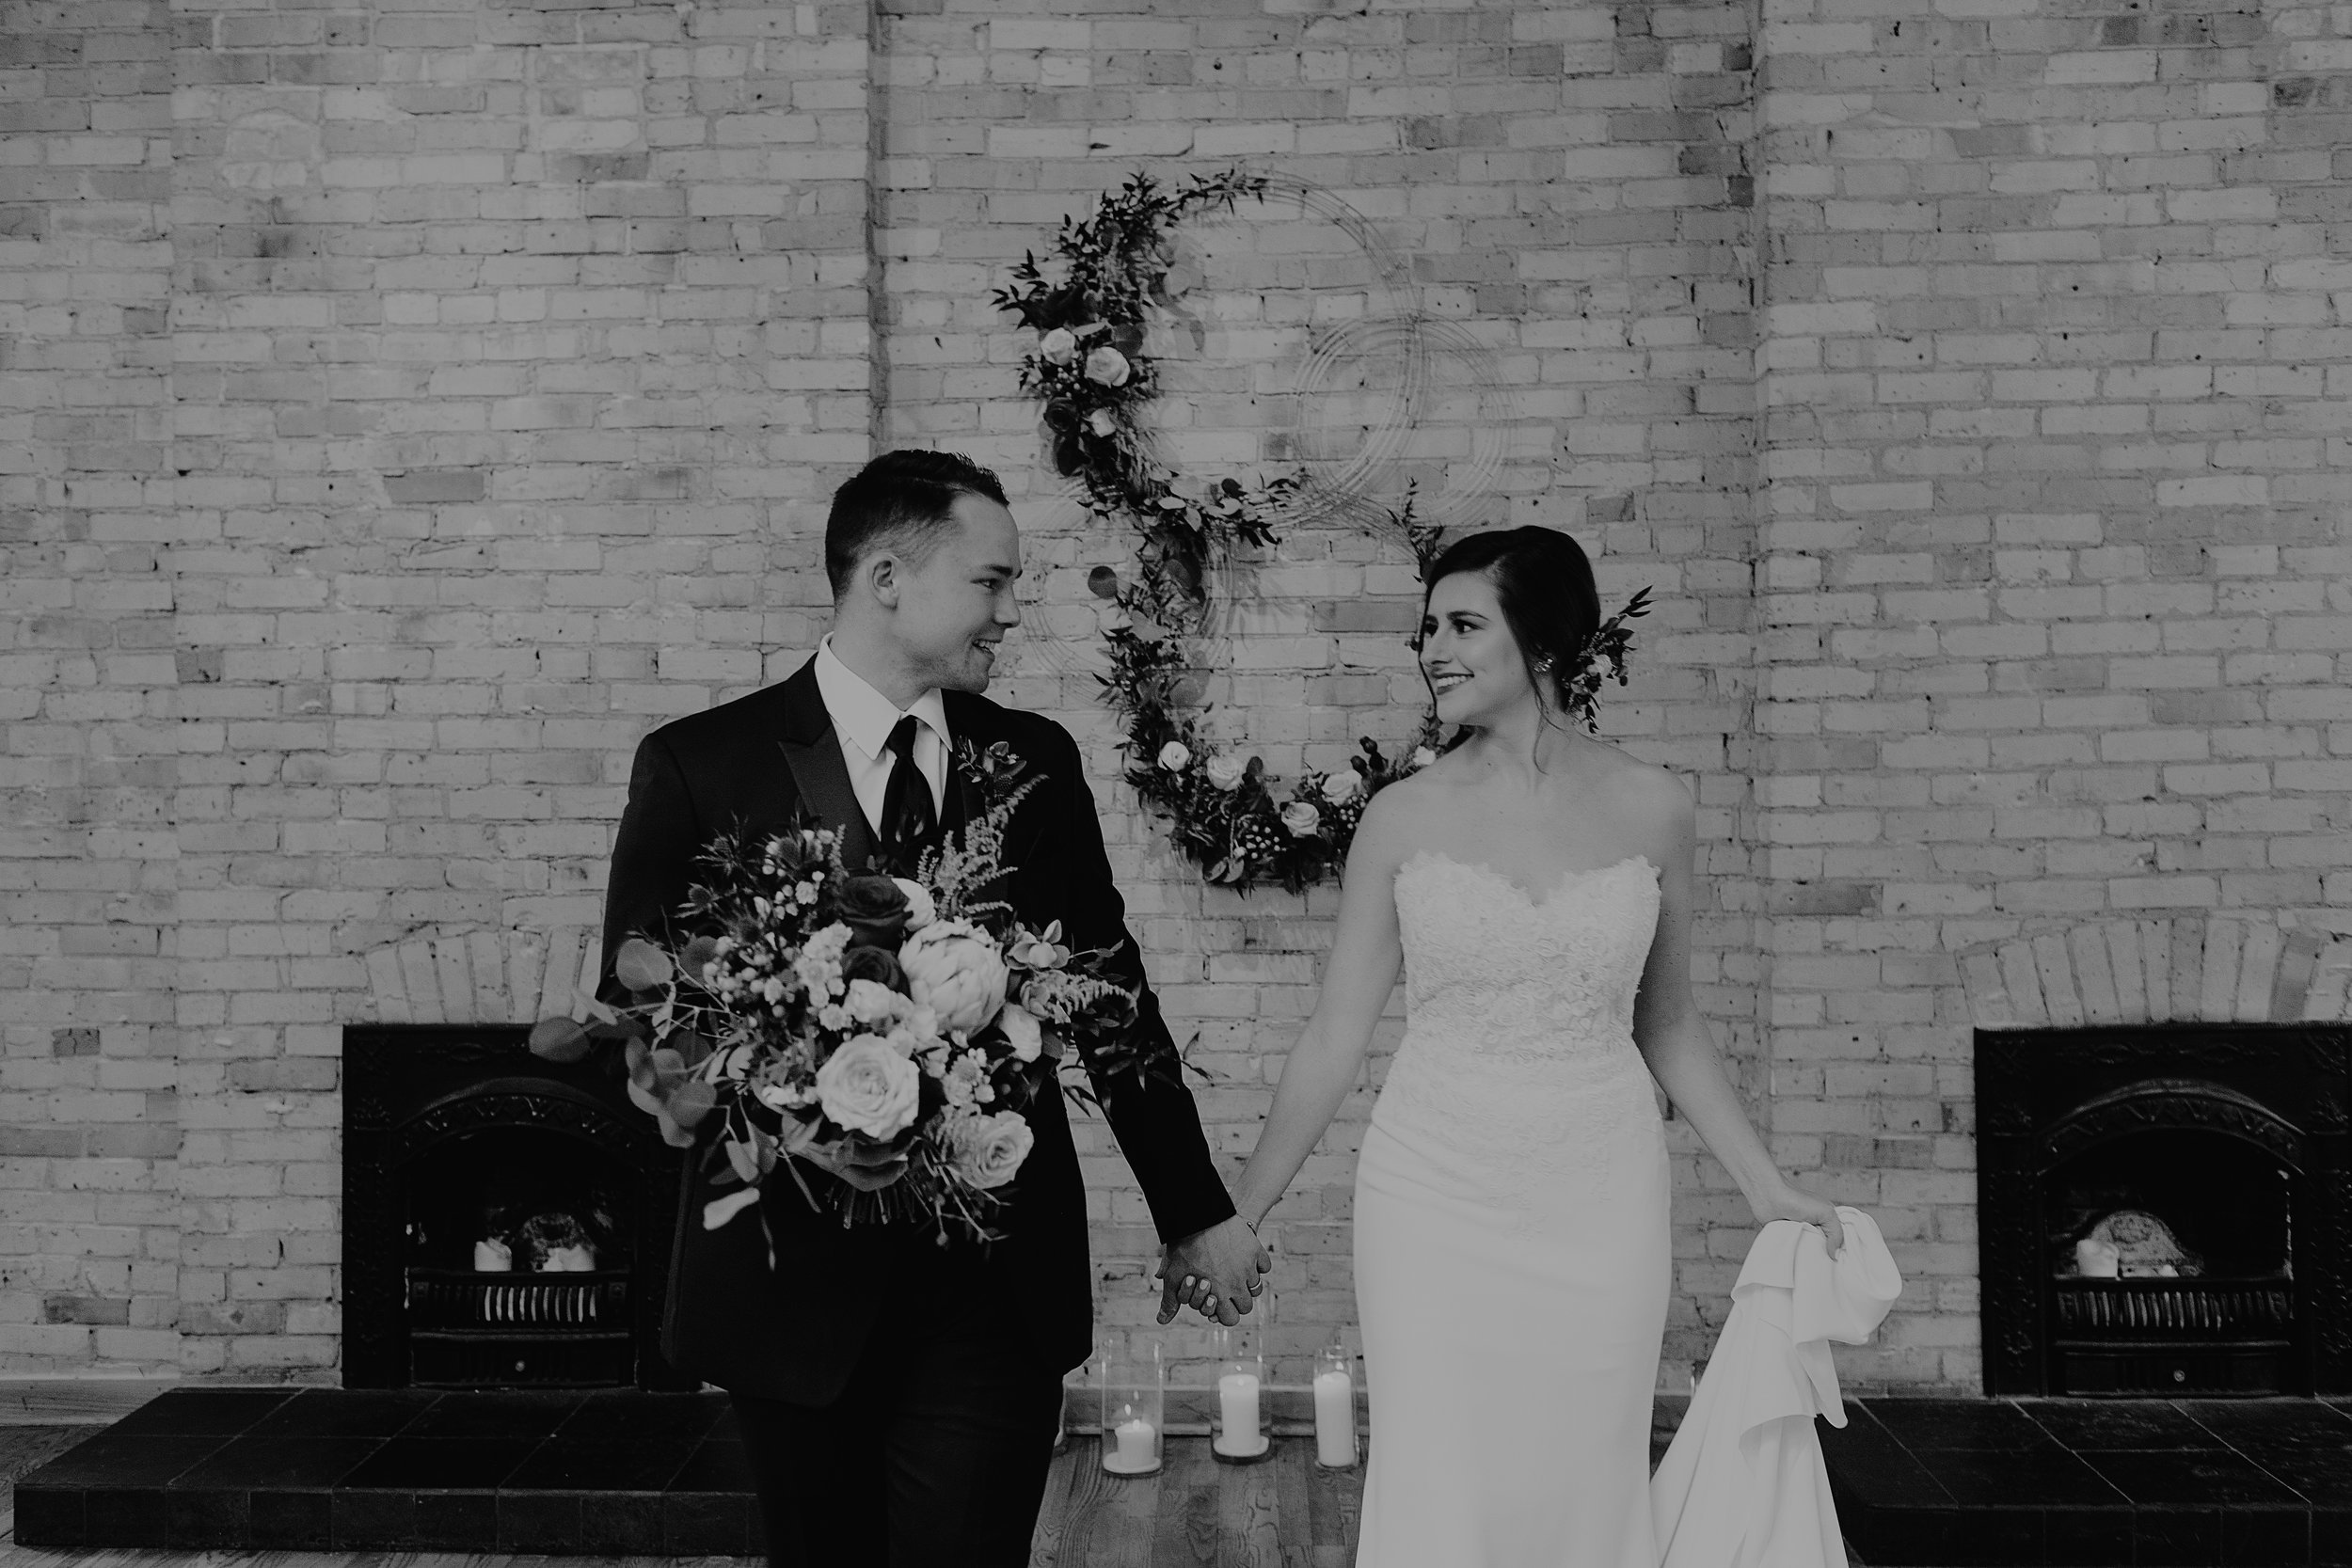 Emma and Buster Elopement - Bride and Groom Black and White Hand in Hand - by Nikki Kate Photography.jpg